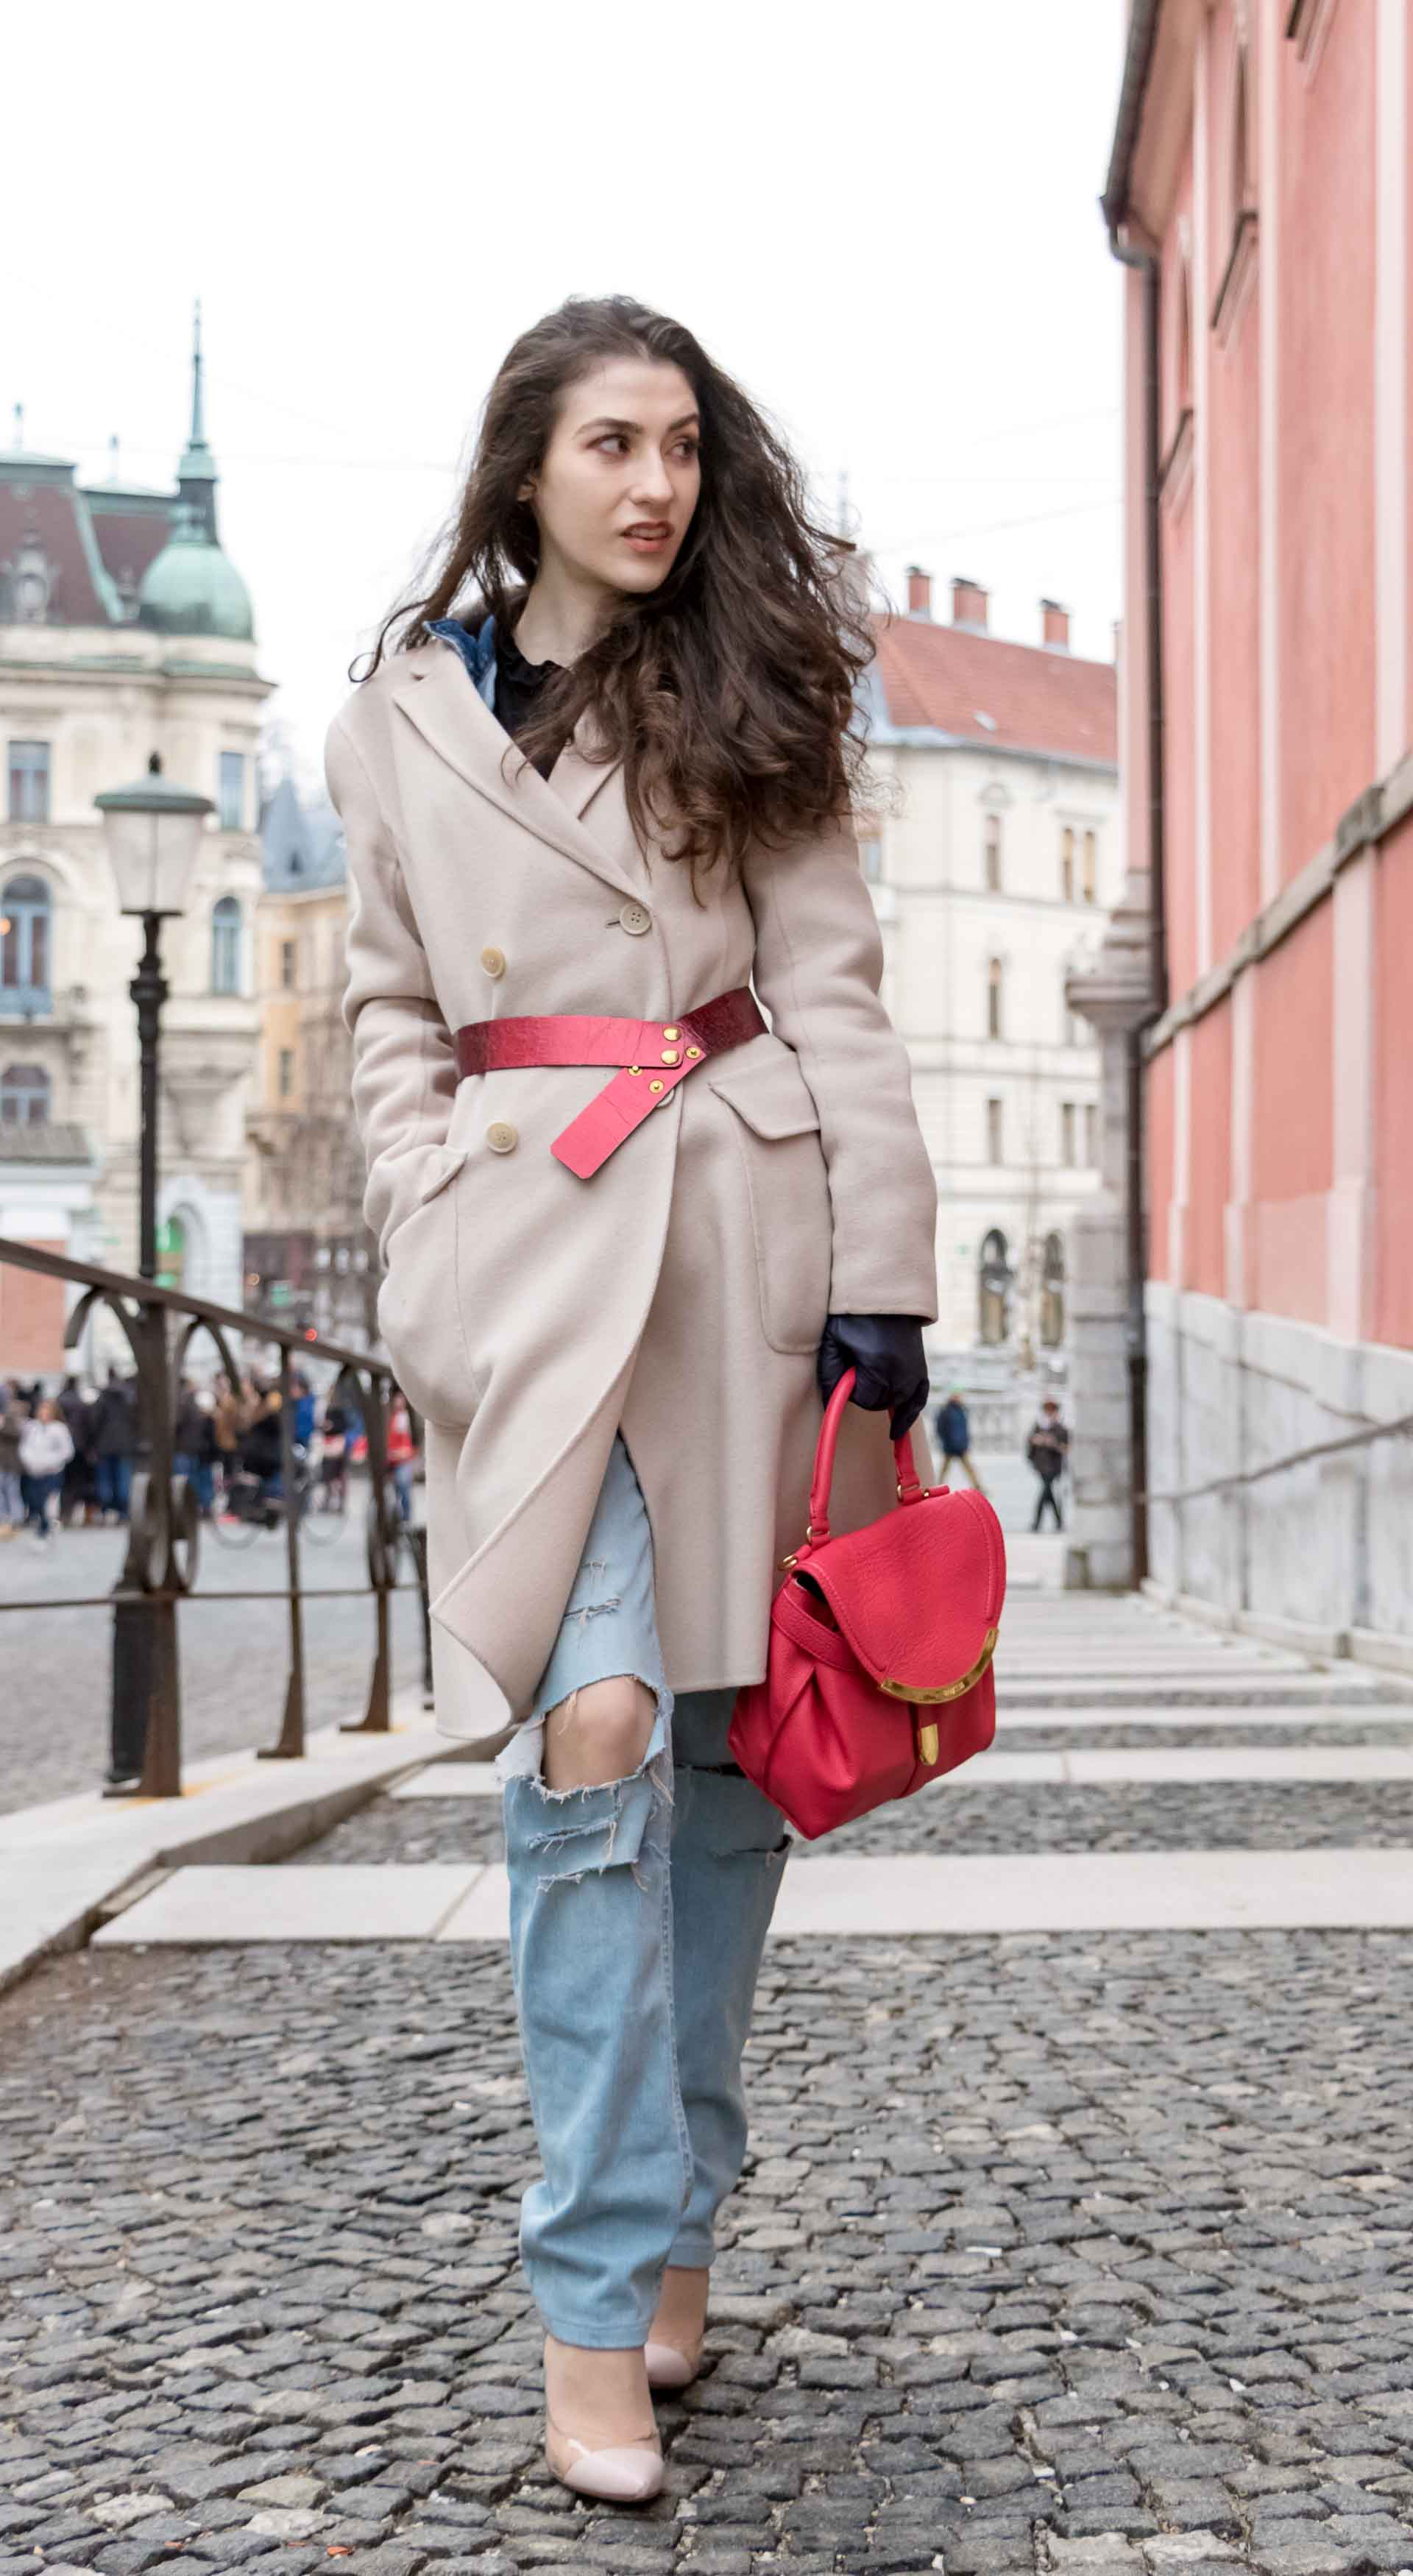 Fashion Blogger Veronika Lipar of Brunette from Wall Street wearing ripped blue Levi's jeans, off-white double breasted Weekend Maxmara coat, red dangling belt, blush Gianvito Rossi plexi pumps, See by Chloe pink top handle bag, blue leather gloves on the street of Ljubljana